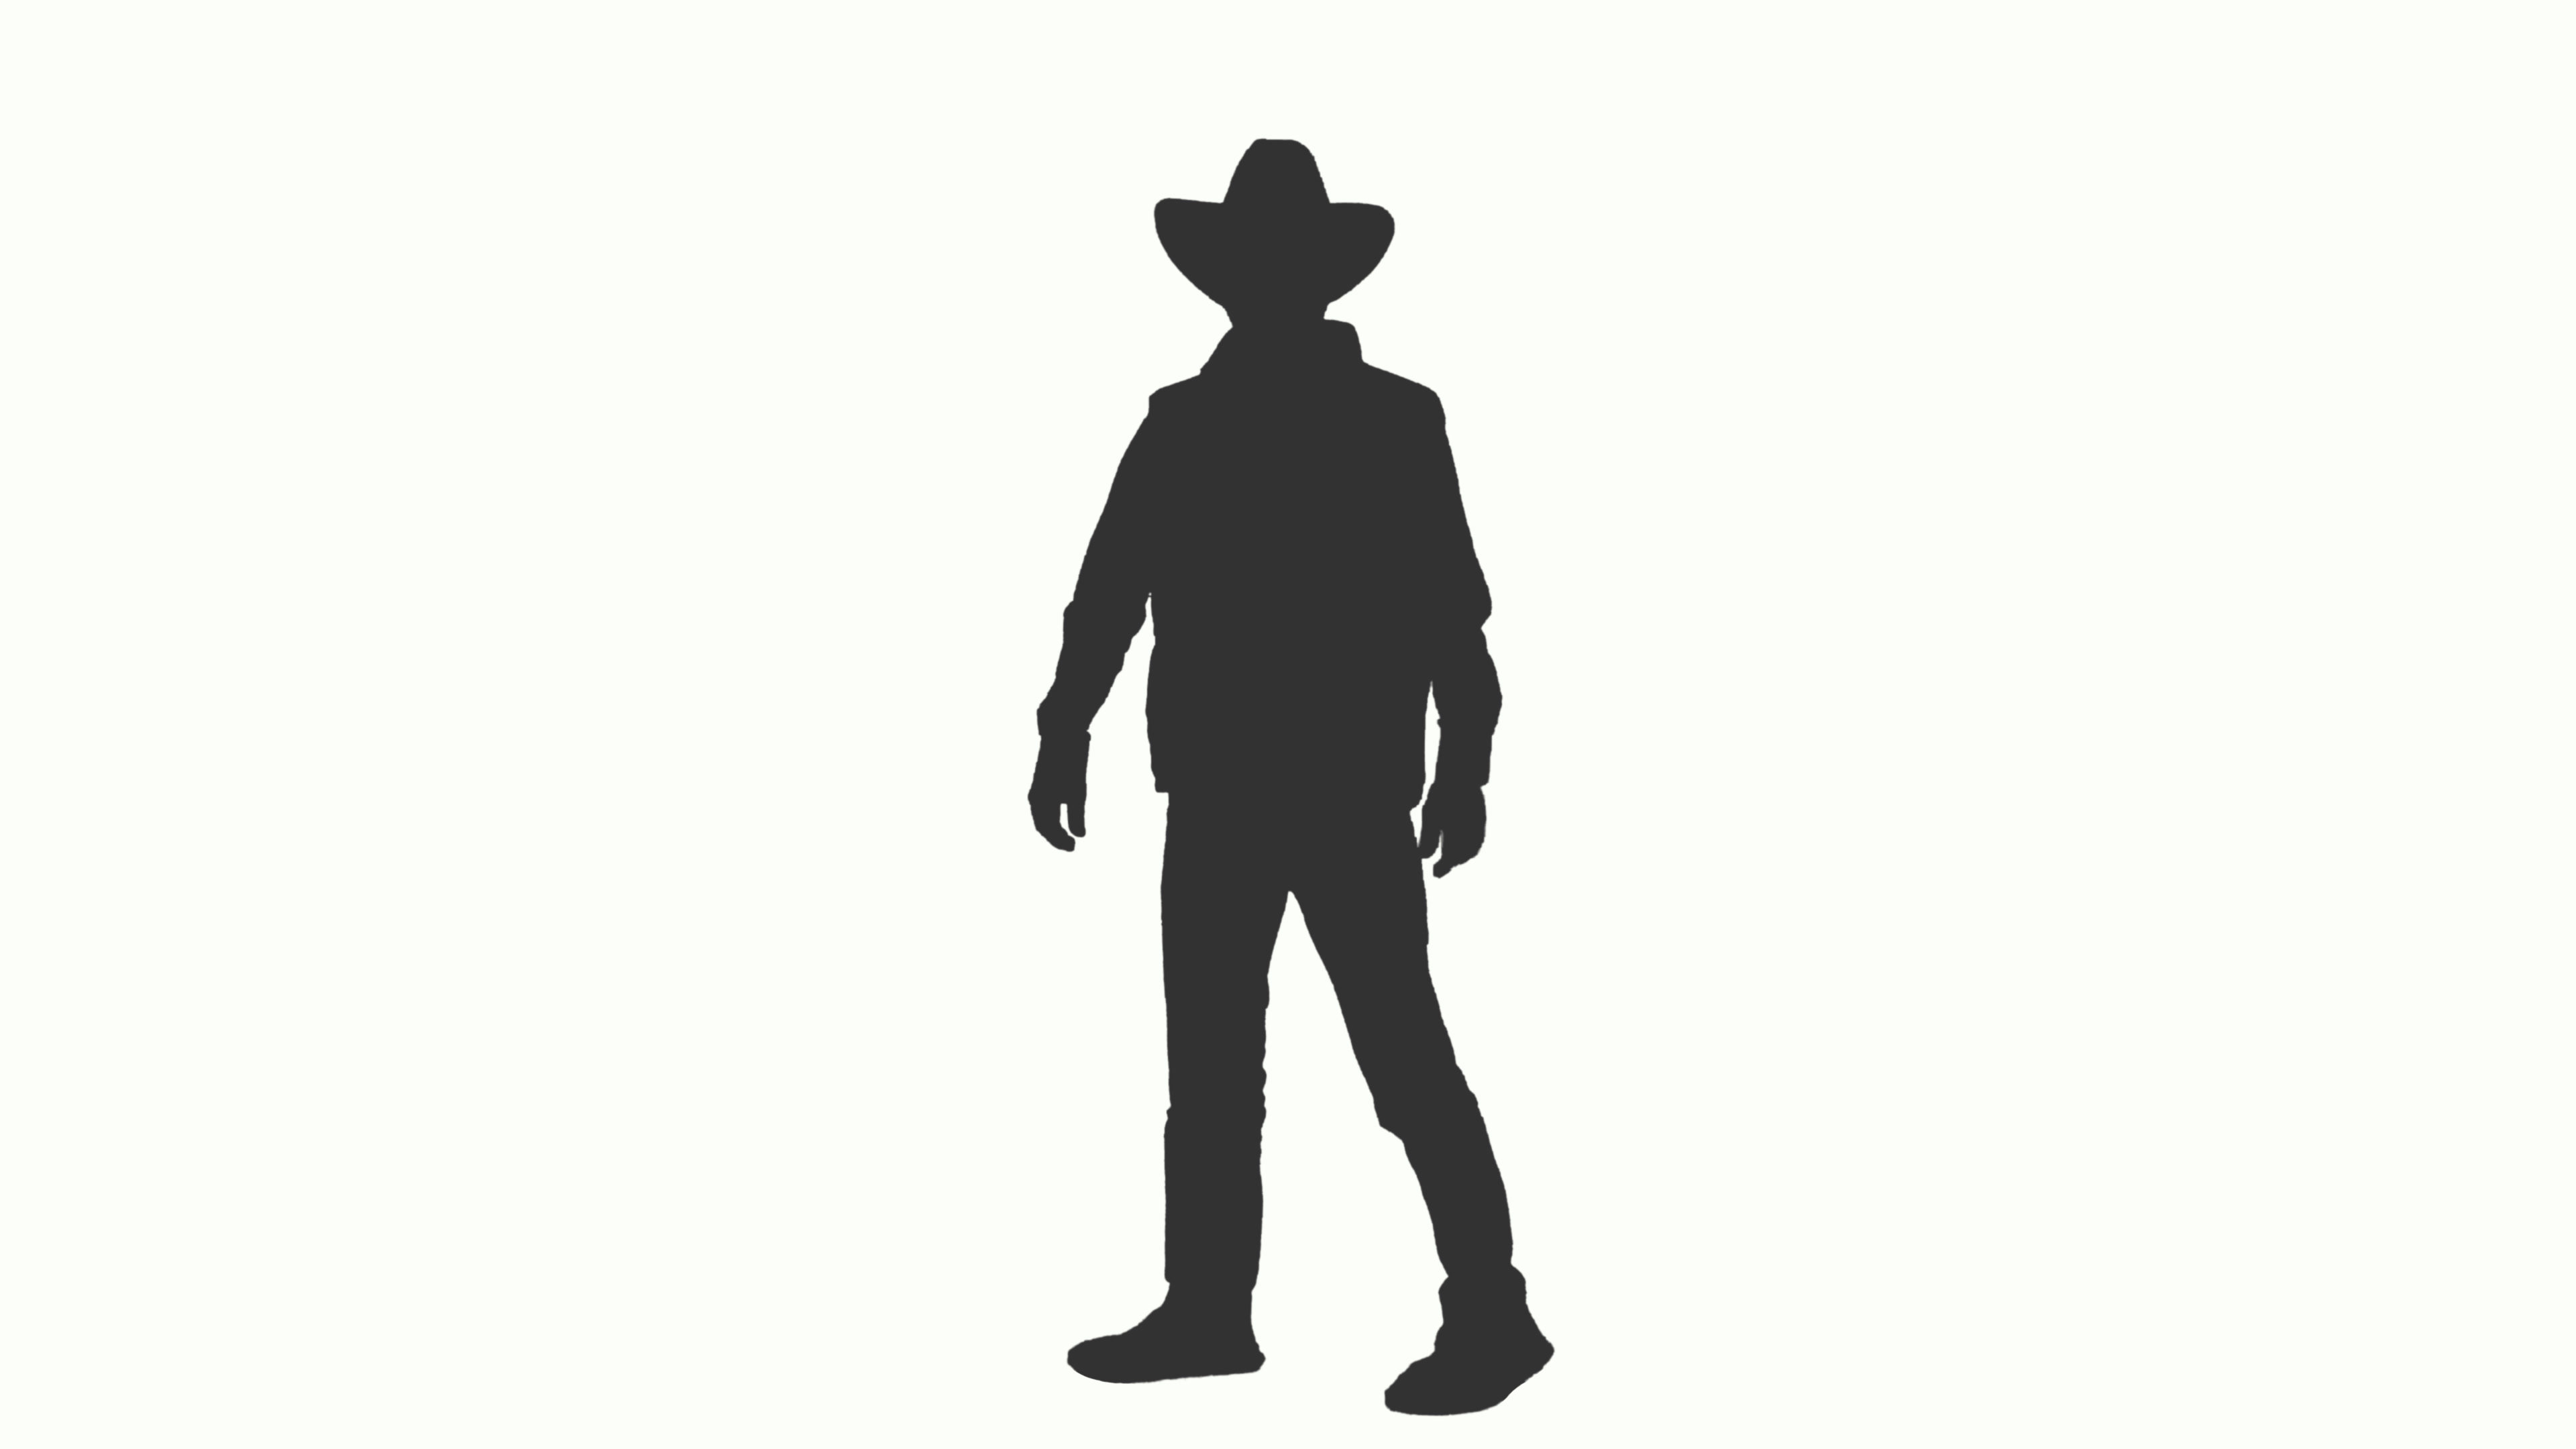 3840x2160 Silhouette Of A Man In Cowboy Hat Walks And Meets Someone, Alpha